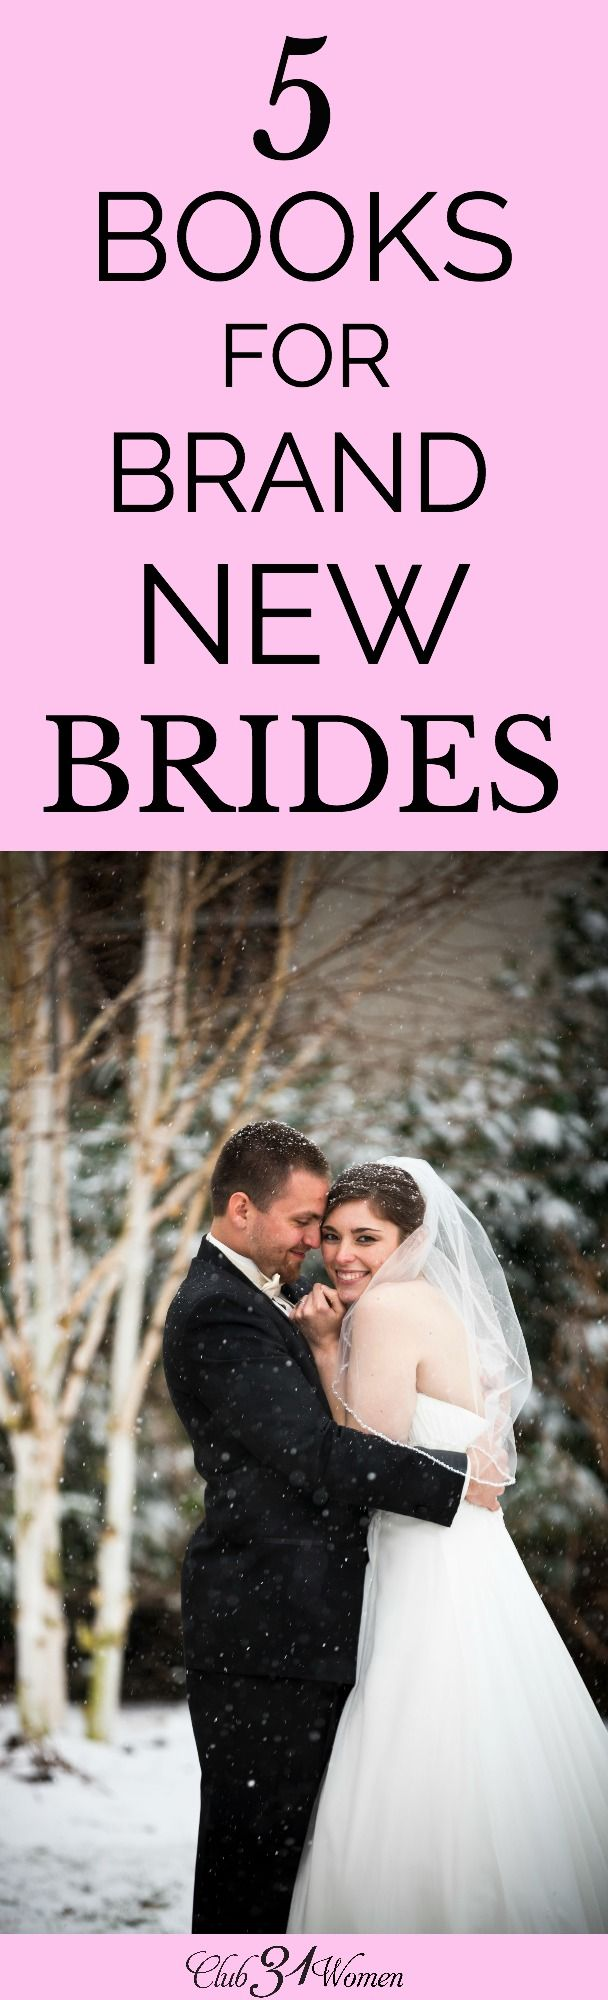 New brides enter marriage with all gusto and joy but sometimes don't realize how unprepared they are to settle into a new life